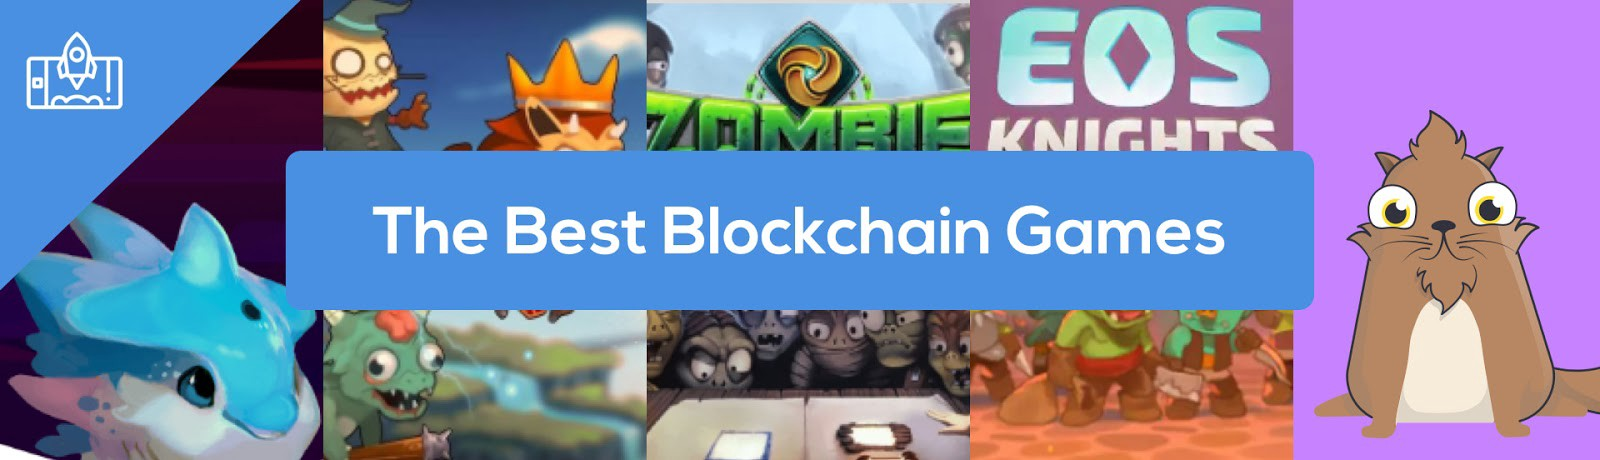 The 50 Best Blockchain Games - Future of Gaming - Medium